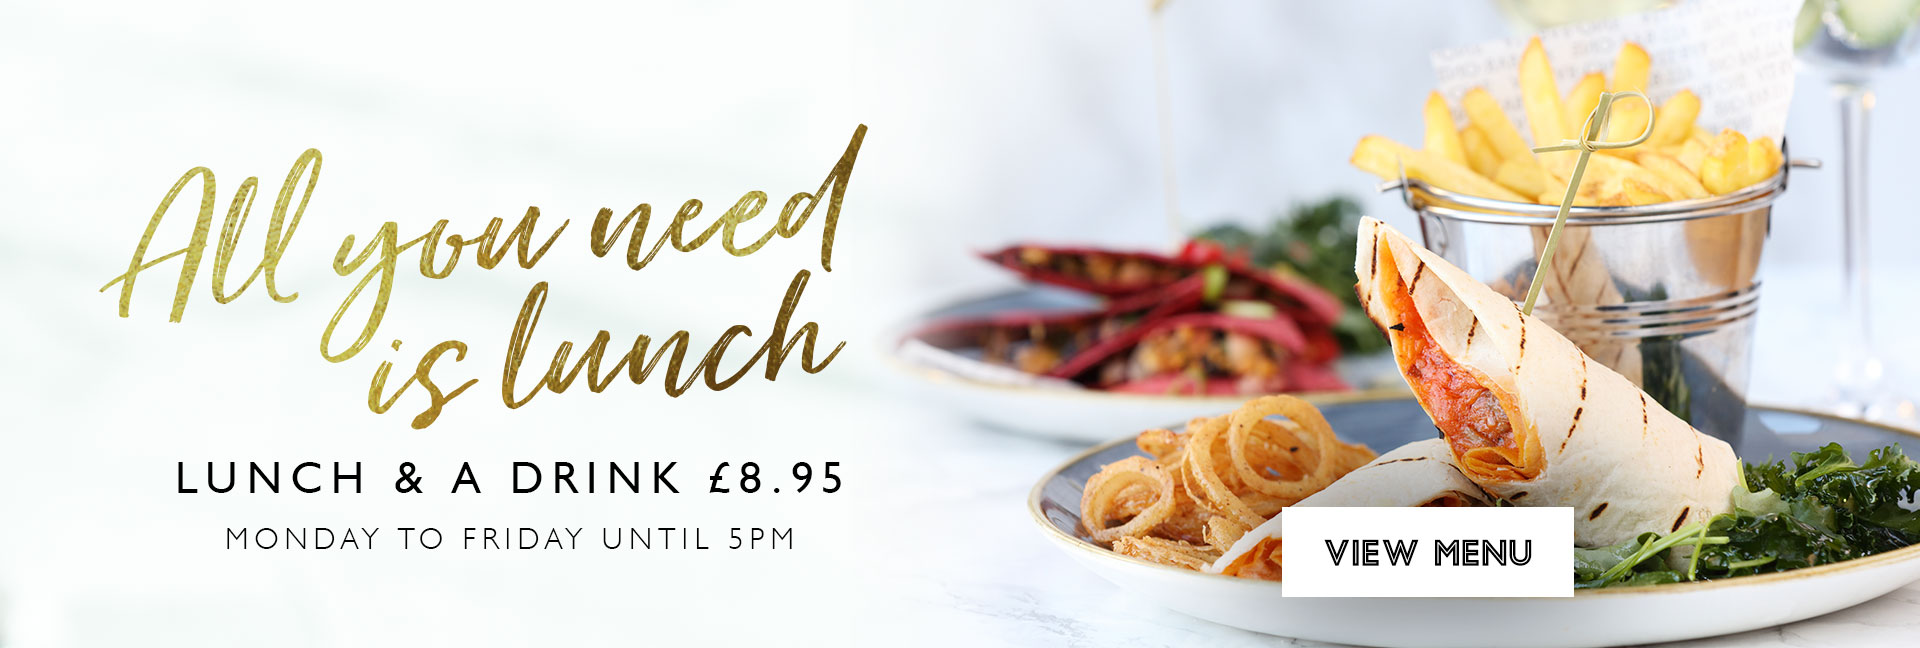 Lunch Offer at All Bar One Chester